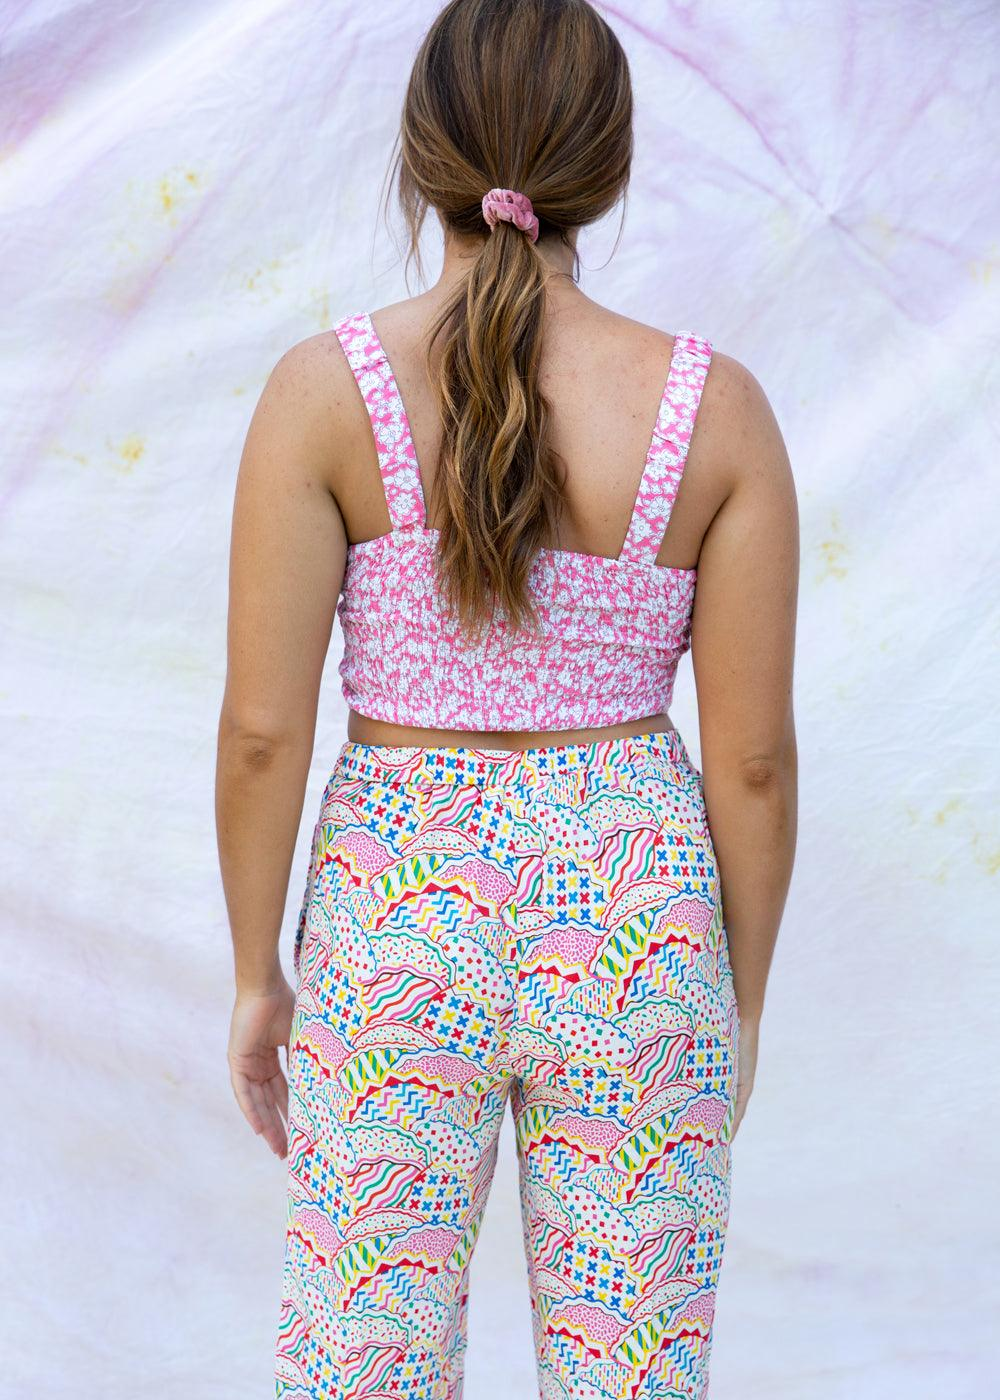 Drawn Flowers Crop Top - cara cara